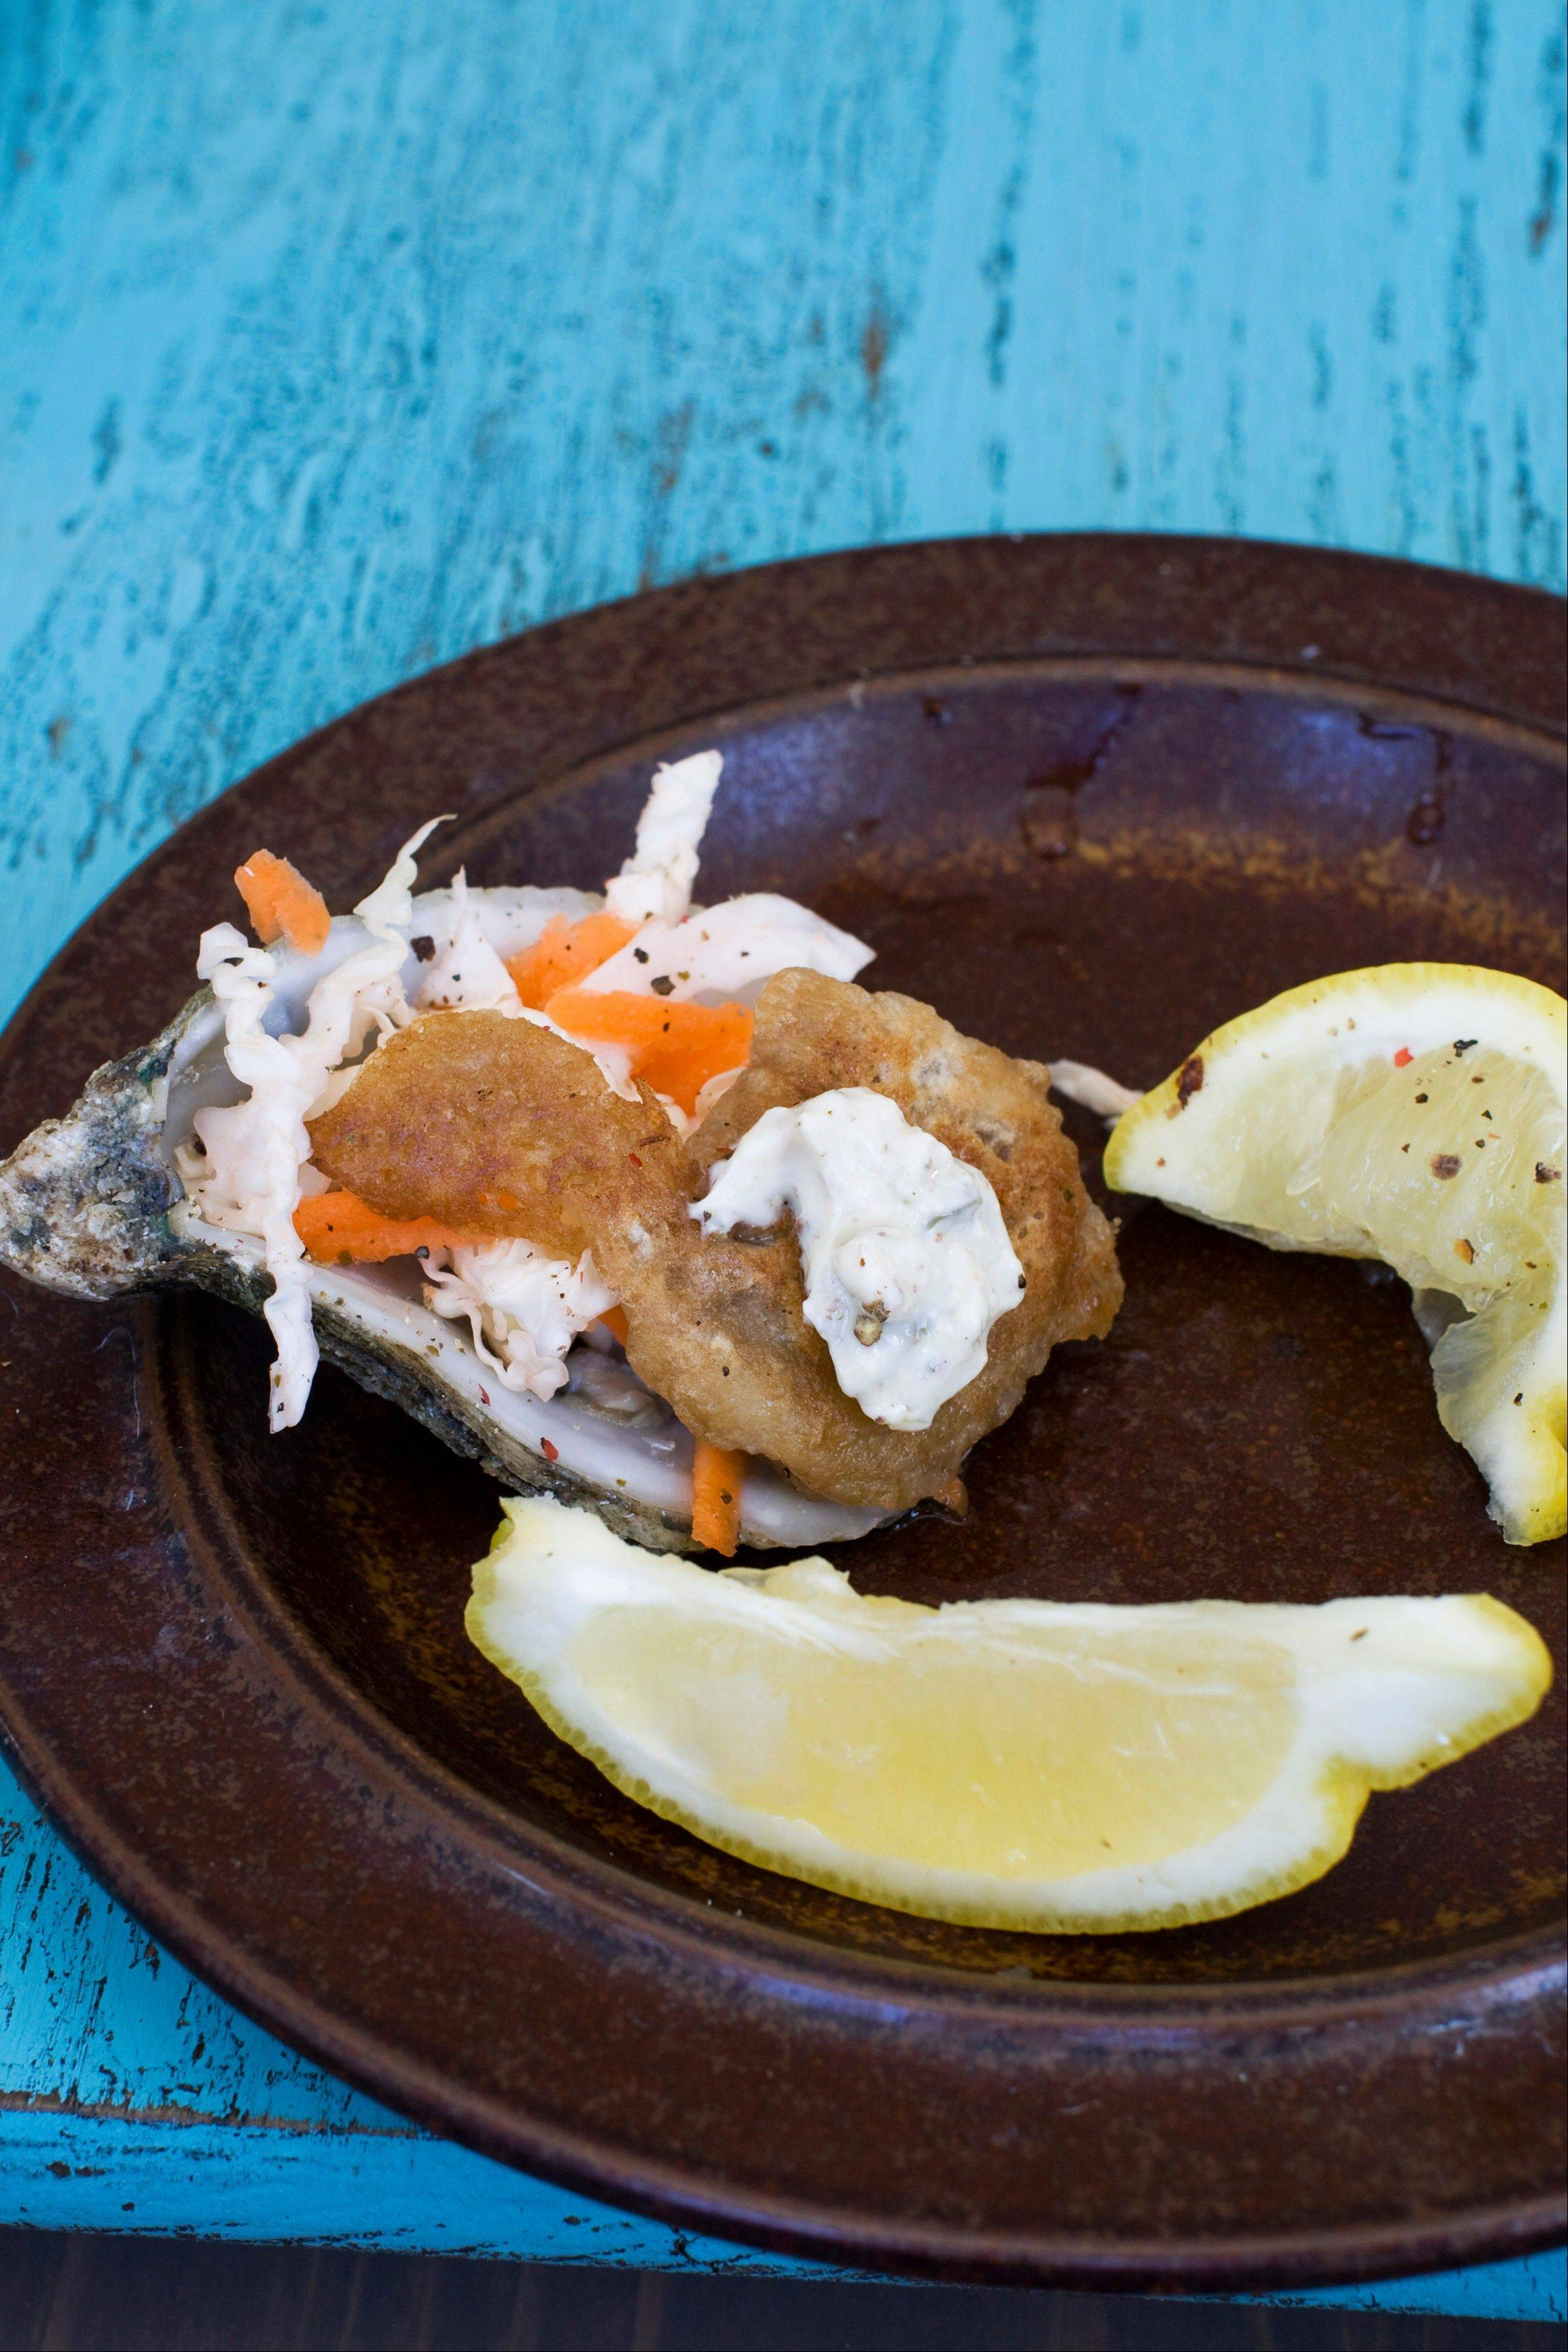 Guinness-battered oyster get a quick dip in hot oil before being served with mustard sauce.